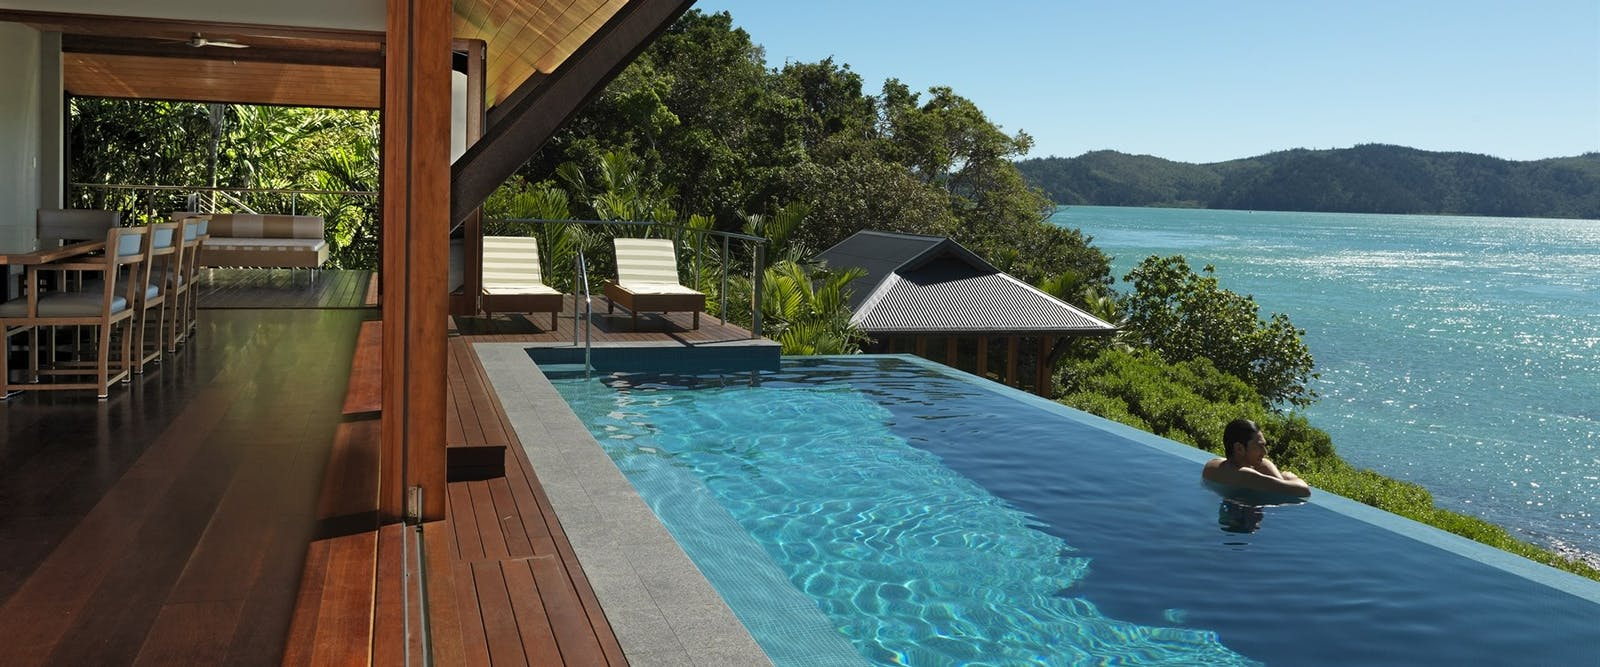 Private swimming pool, qualia, hamilton island